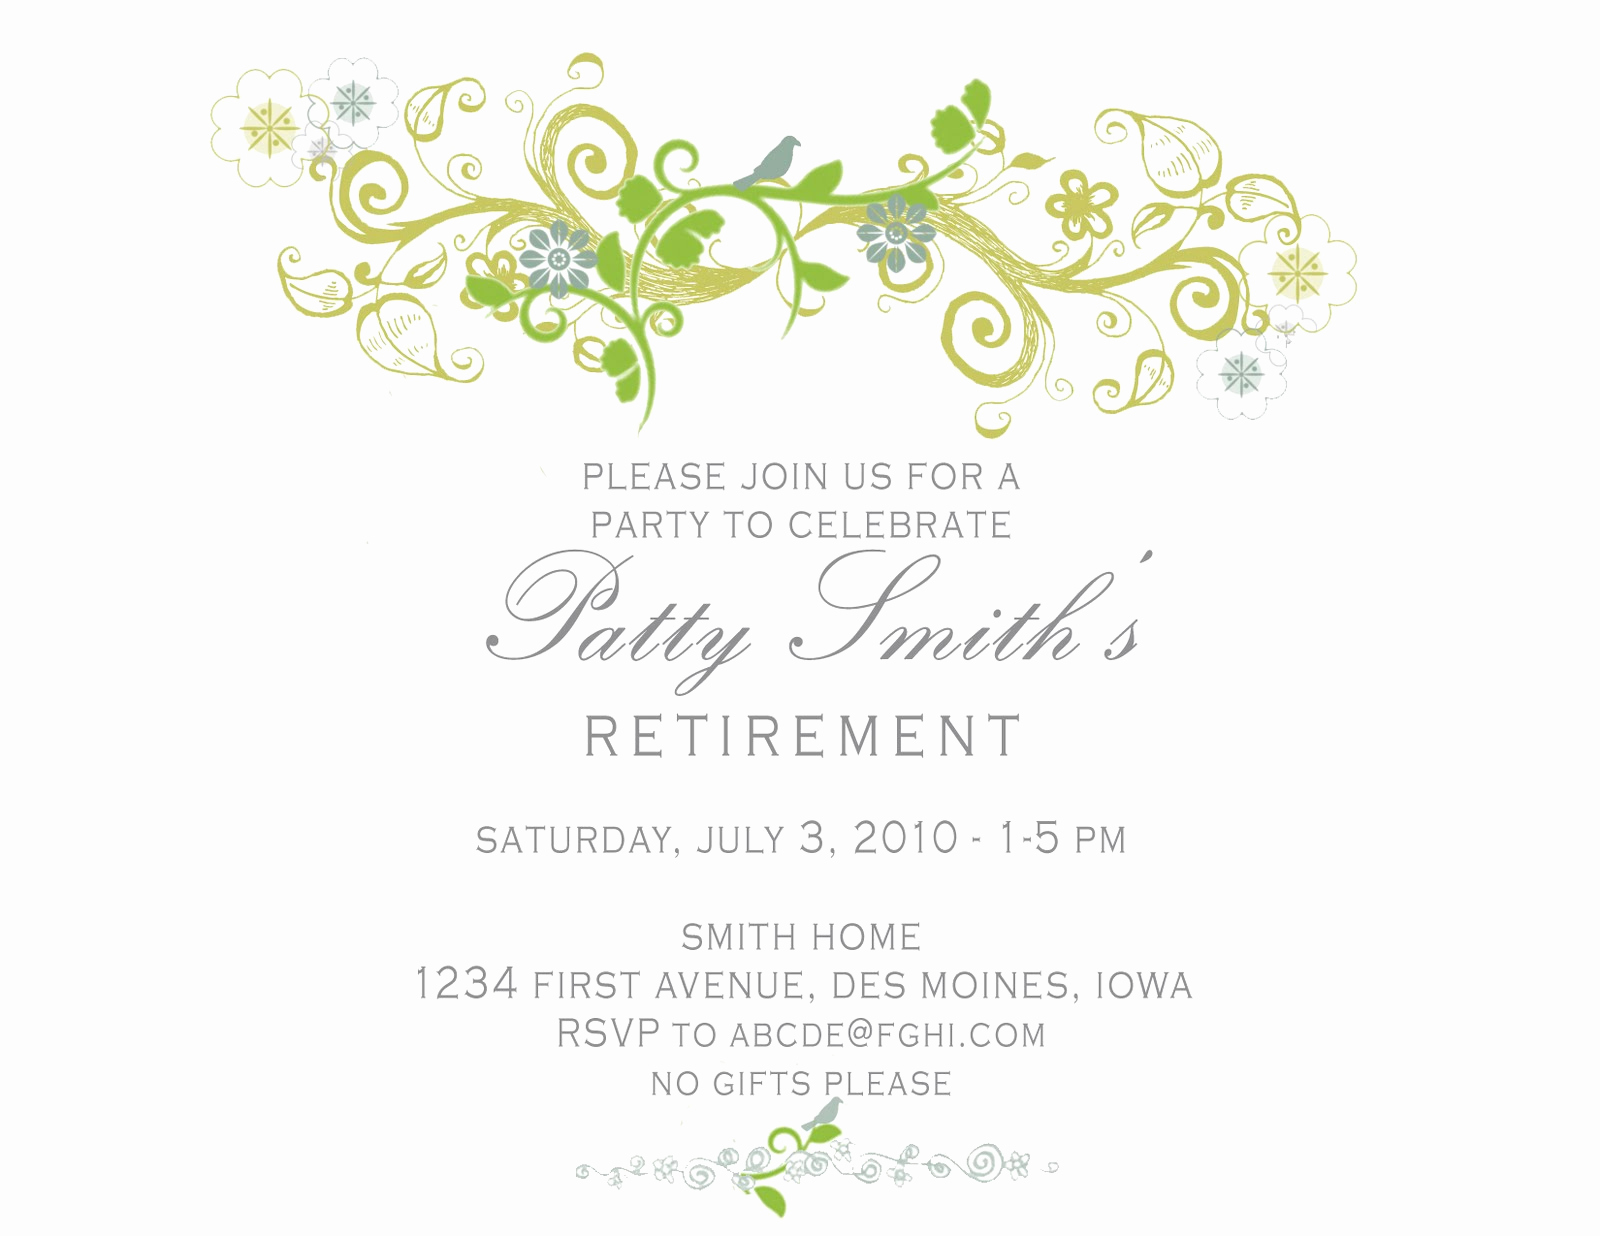 Retirement Party Invitation Templates Luxury Idesign A Retirement Party Invitation